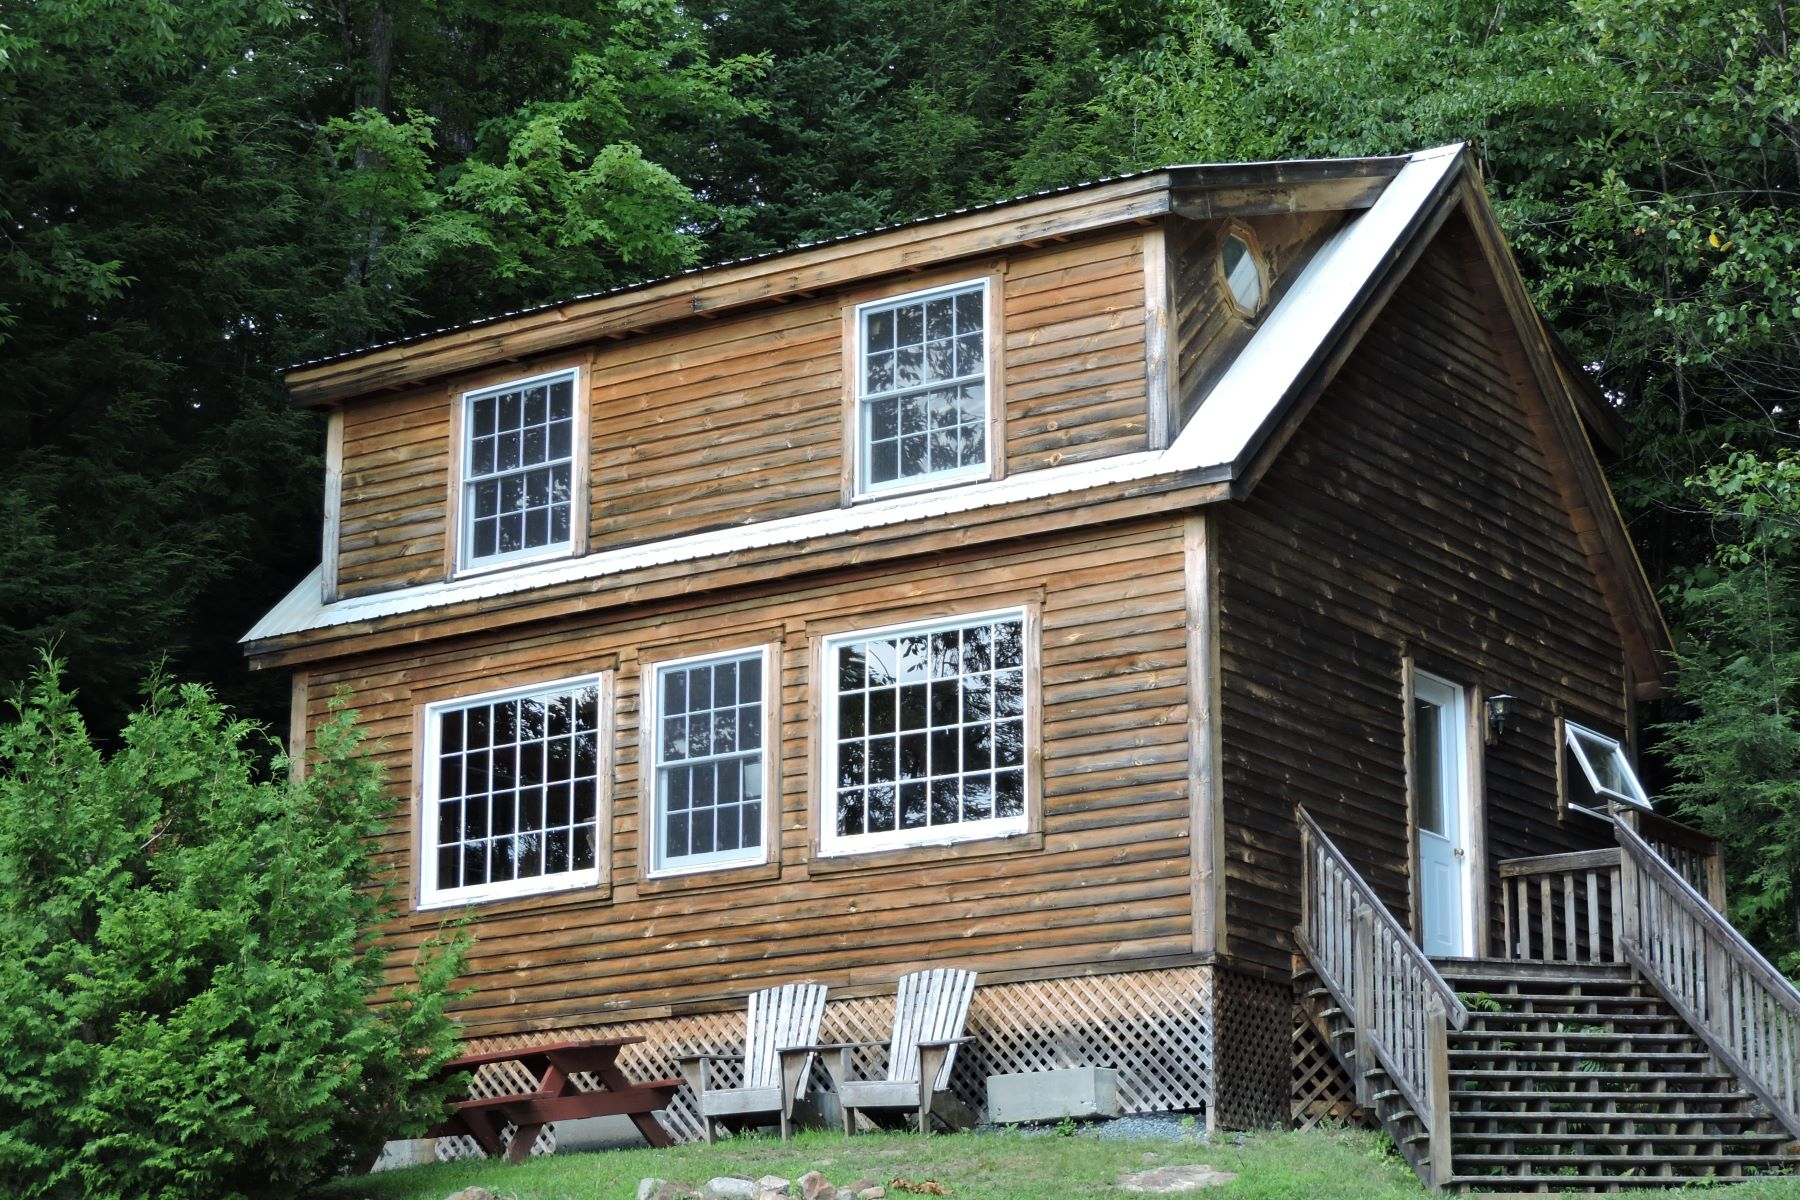 single family homes for Sale at 190 Campers Lane 7, Barnet 190 Campers Ln 7 Barnet, Vermont 05821 United States